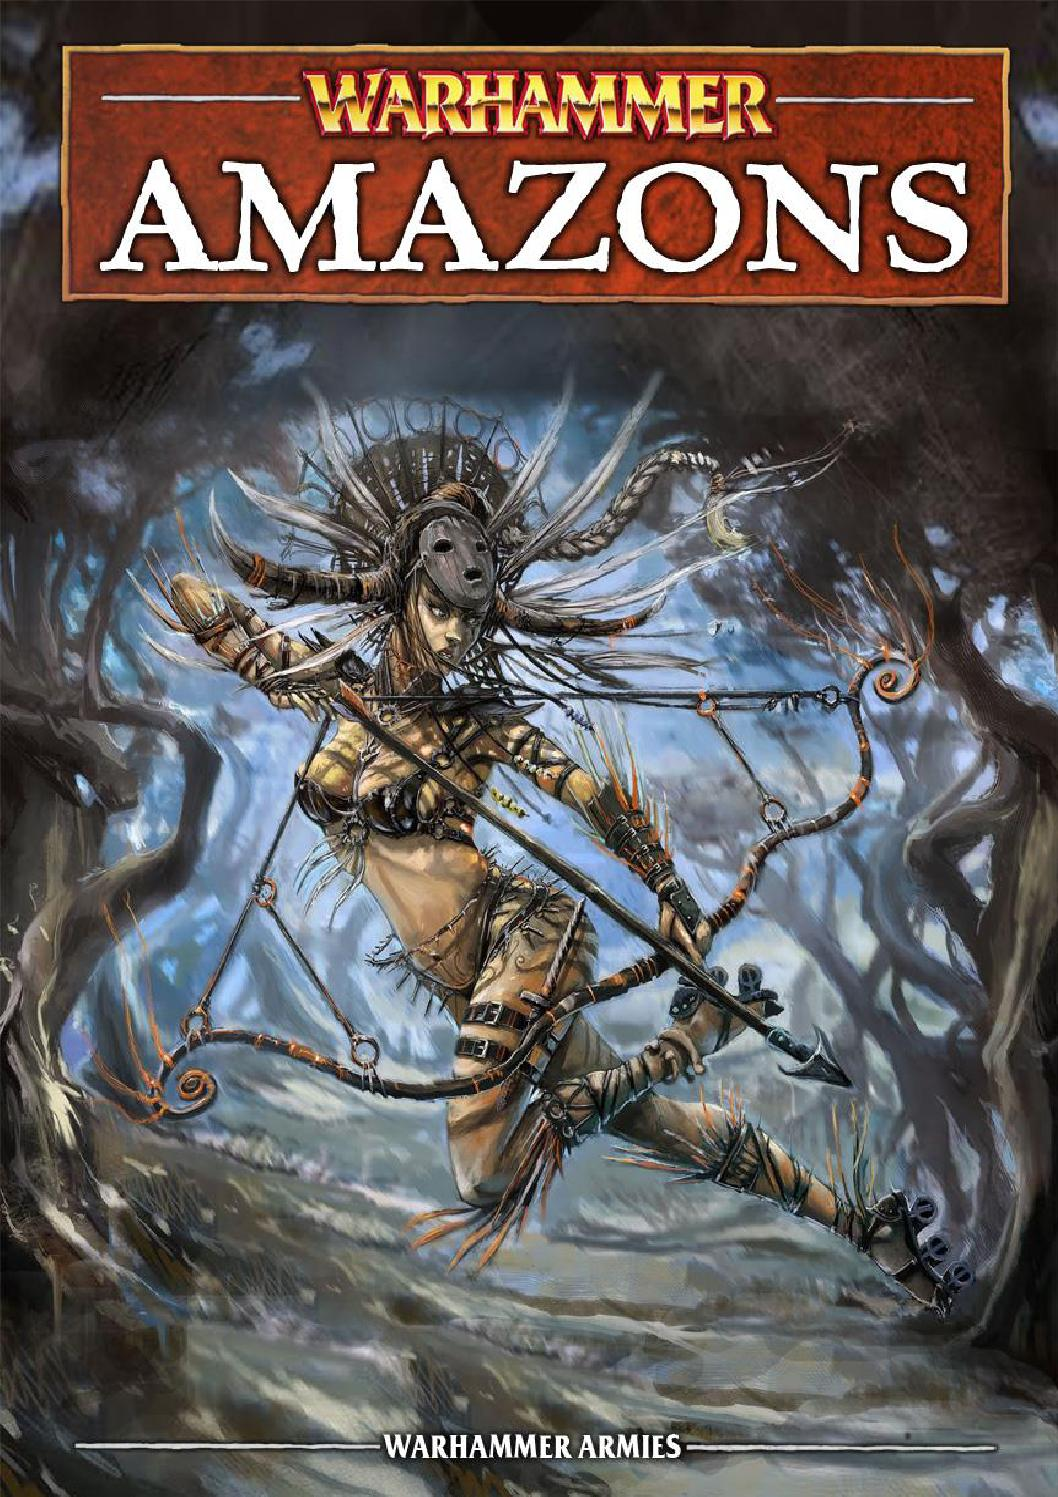 The Amazons, mysterious warrior women of the Lustrian jungles.